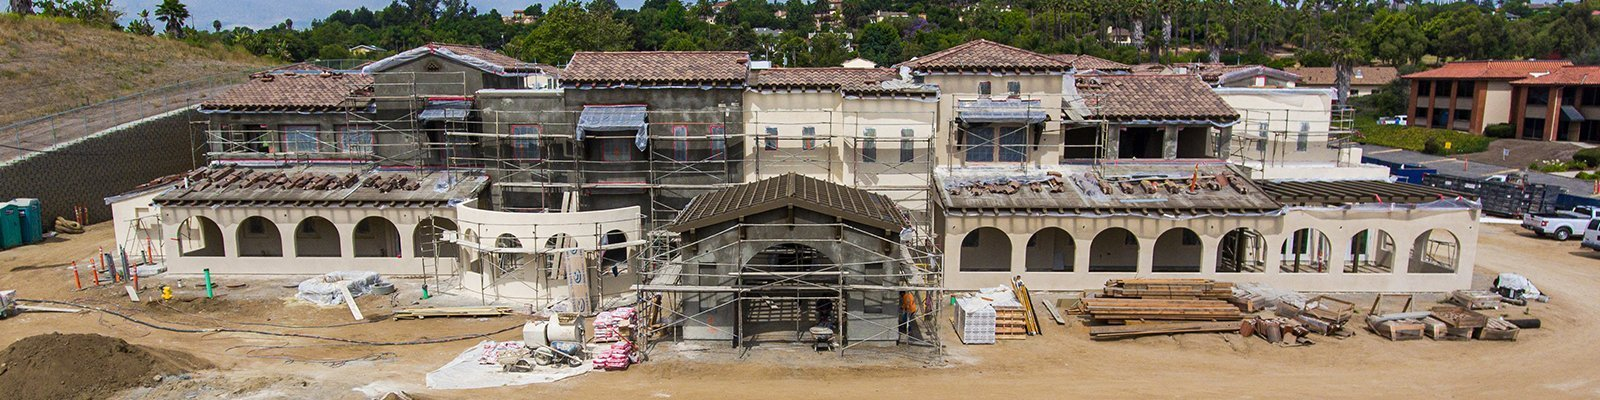 PacifiCore Construction Inc. | Laying the foundation for Southern California growth.